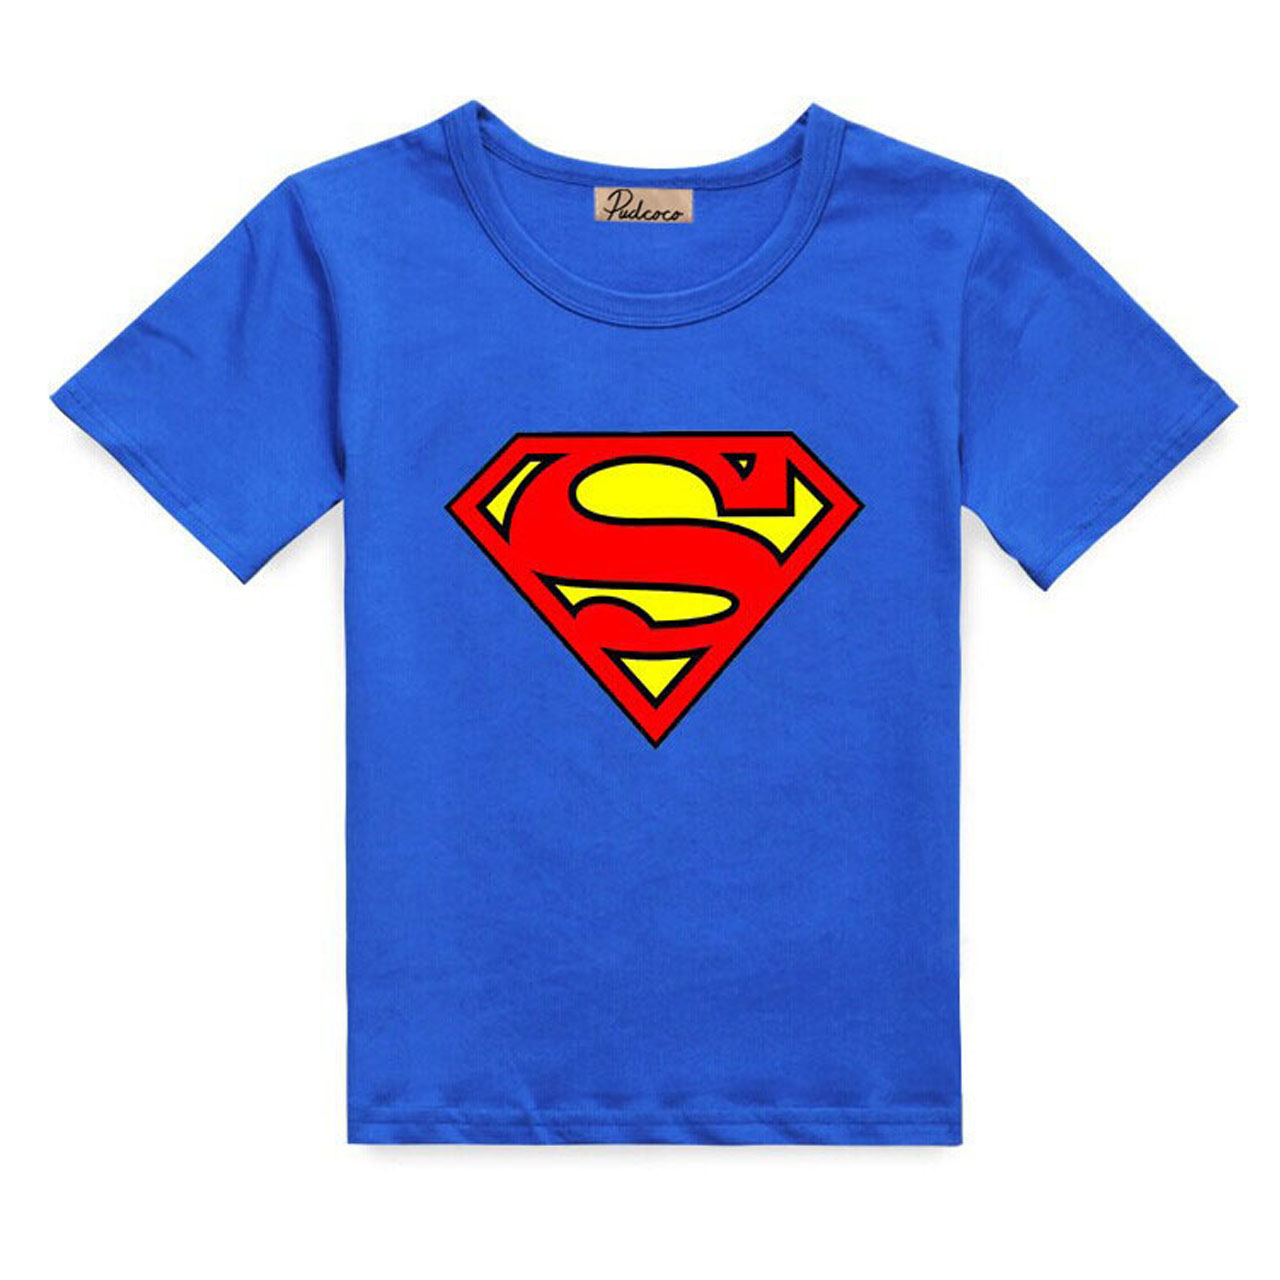 2018 Cotton Toddler Boys Superhero Costume T Shirts Boys Summer Tops Short Sleeve Cute Lovely Print Children Tees